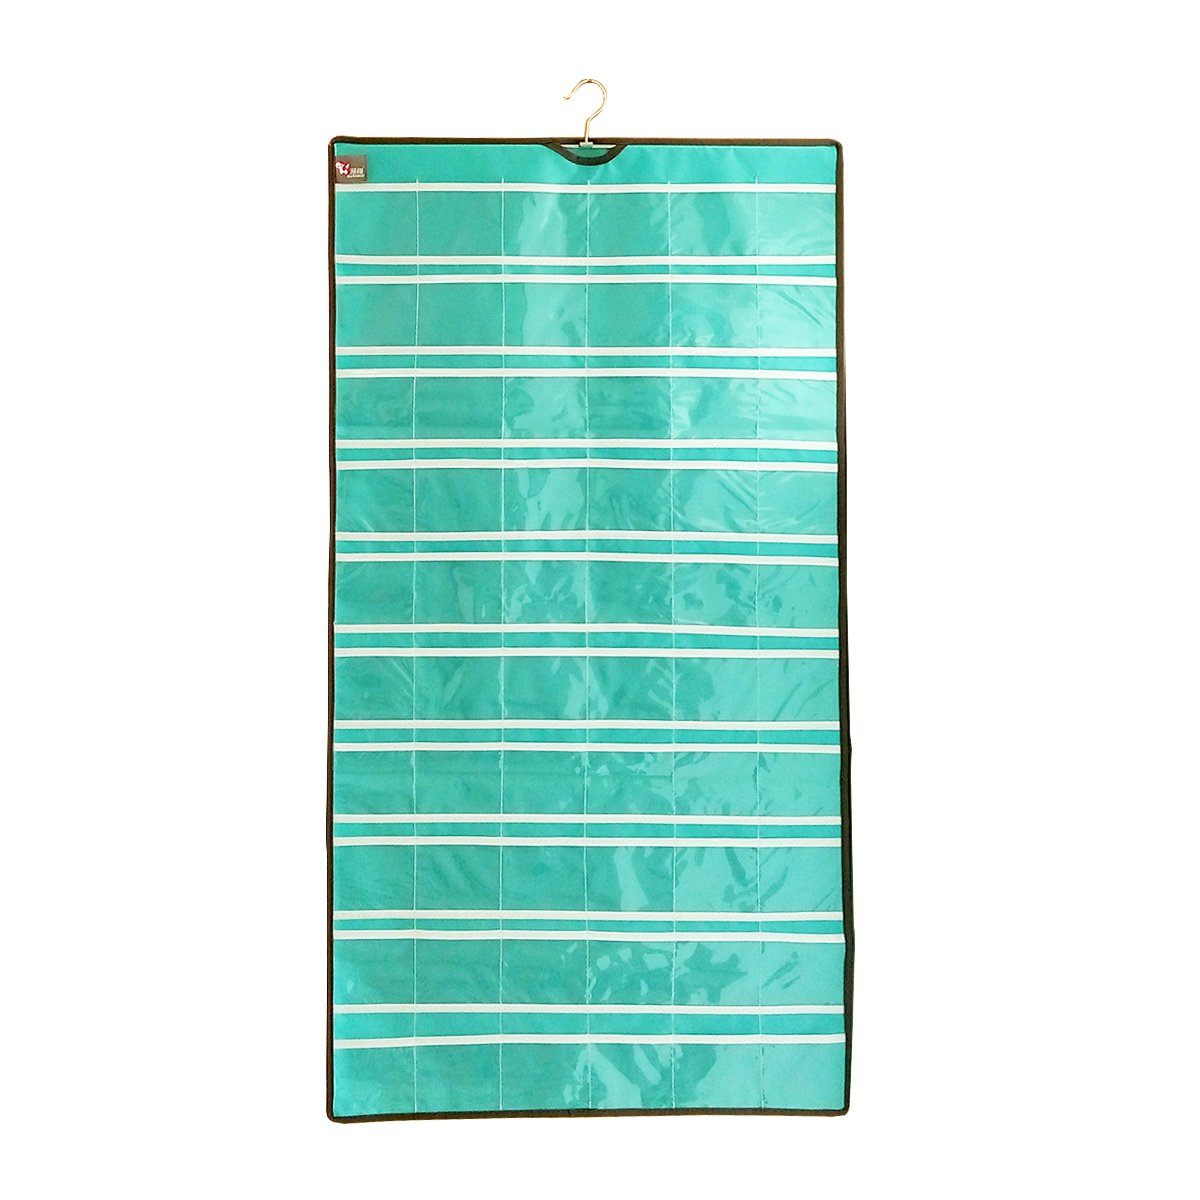 60 Classroom Pocket Chart Pockets Hanging Jewelry Organizer Earrings Holding with Hanger Closet Storage (Cyan)